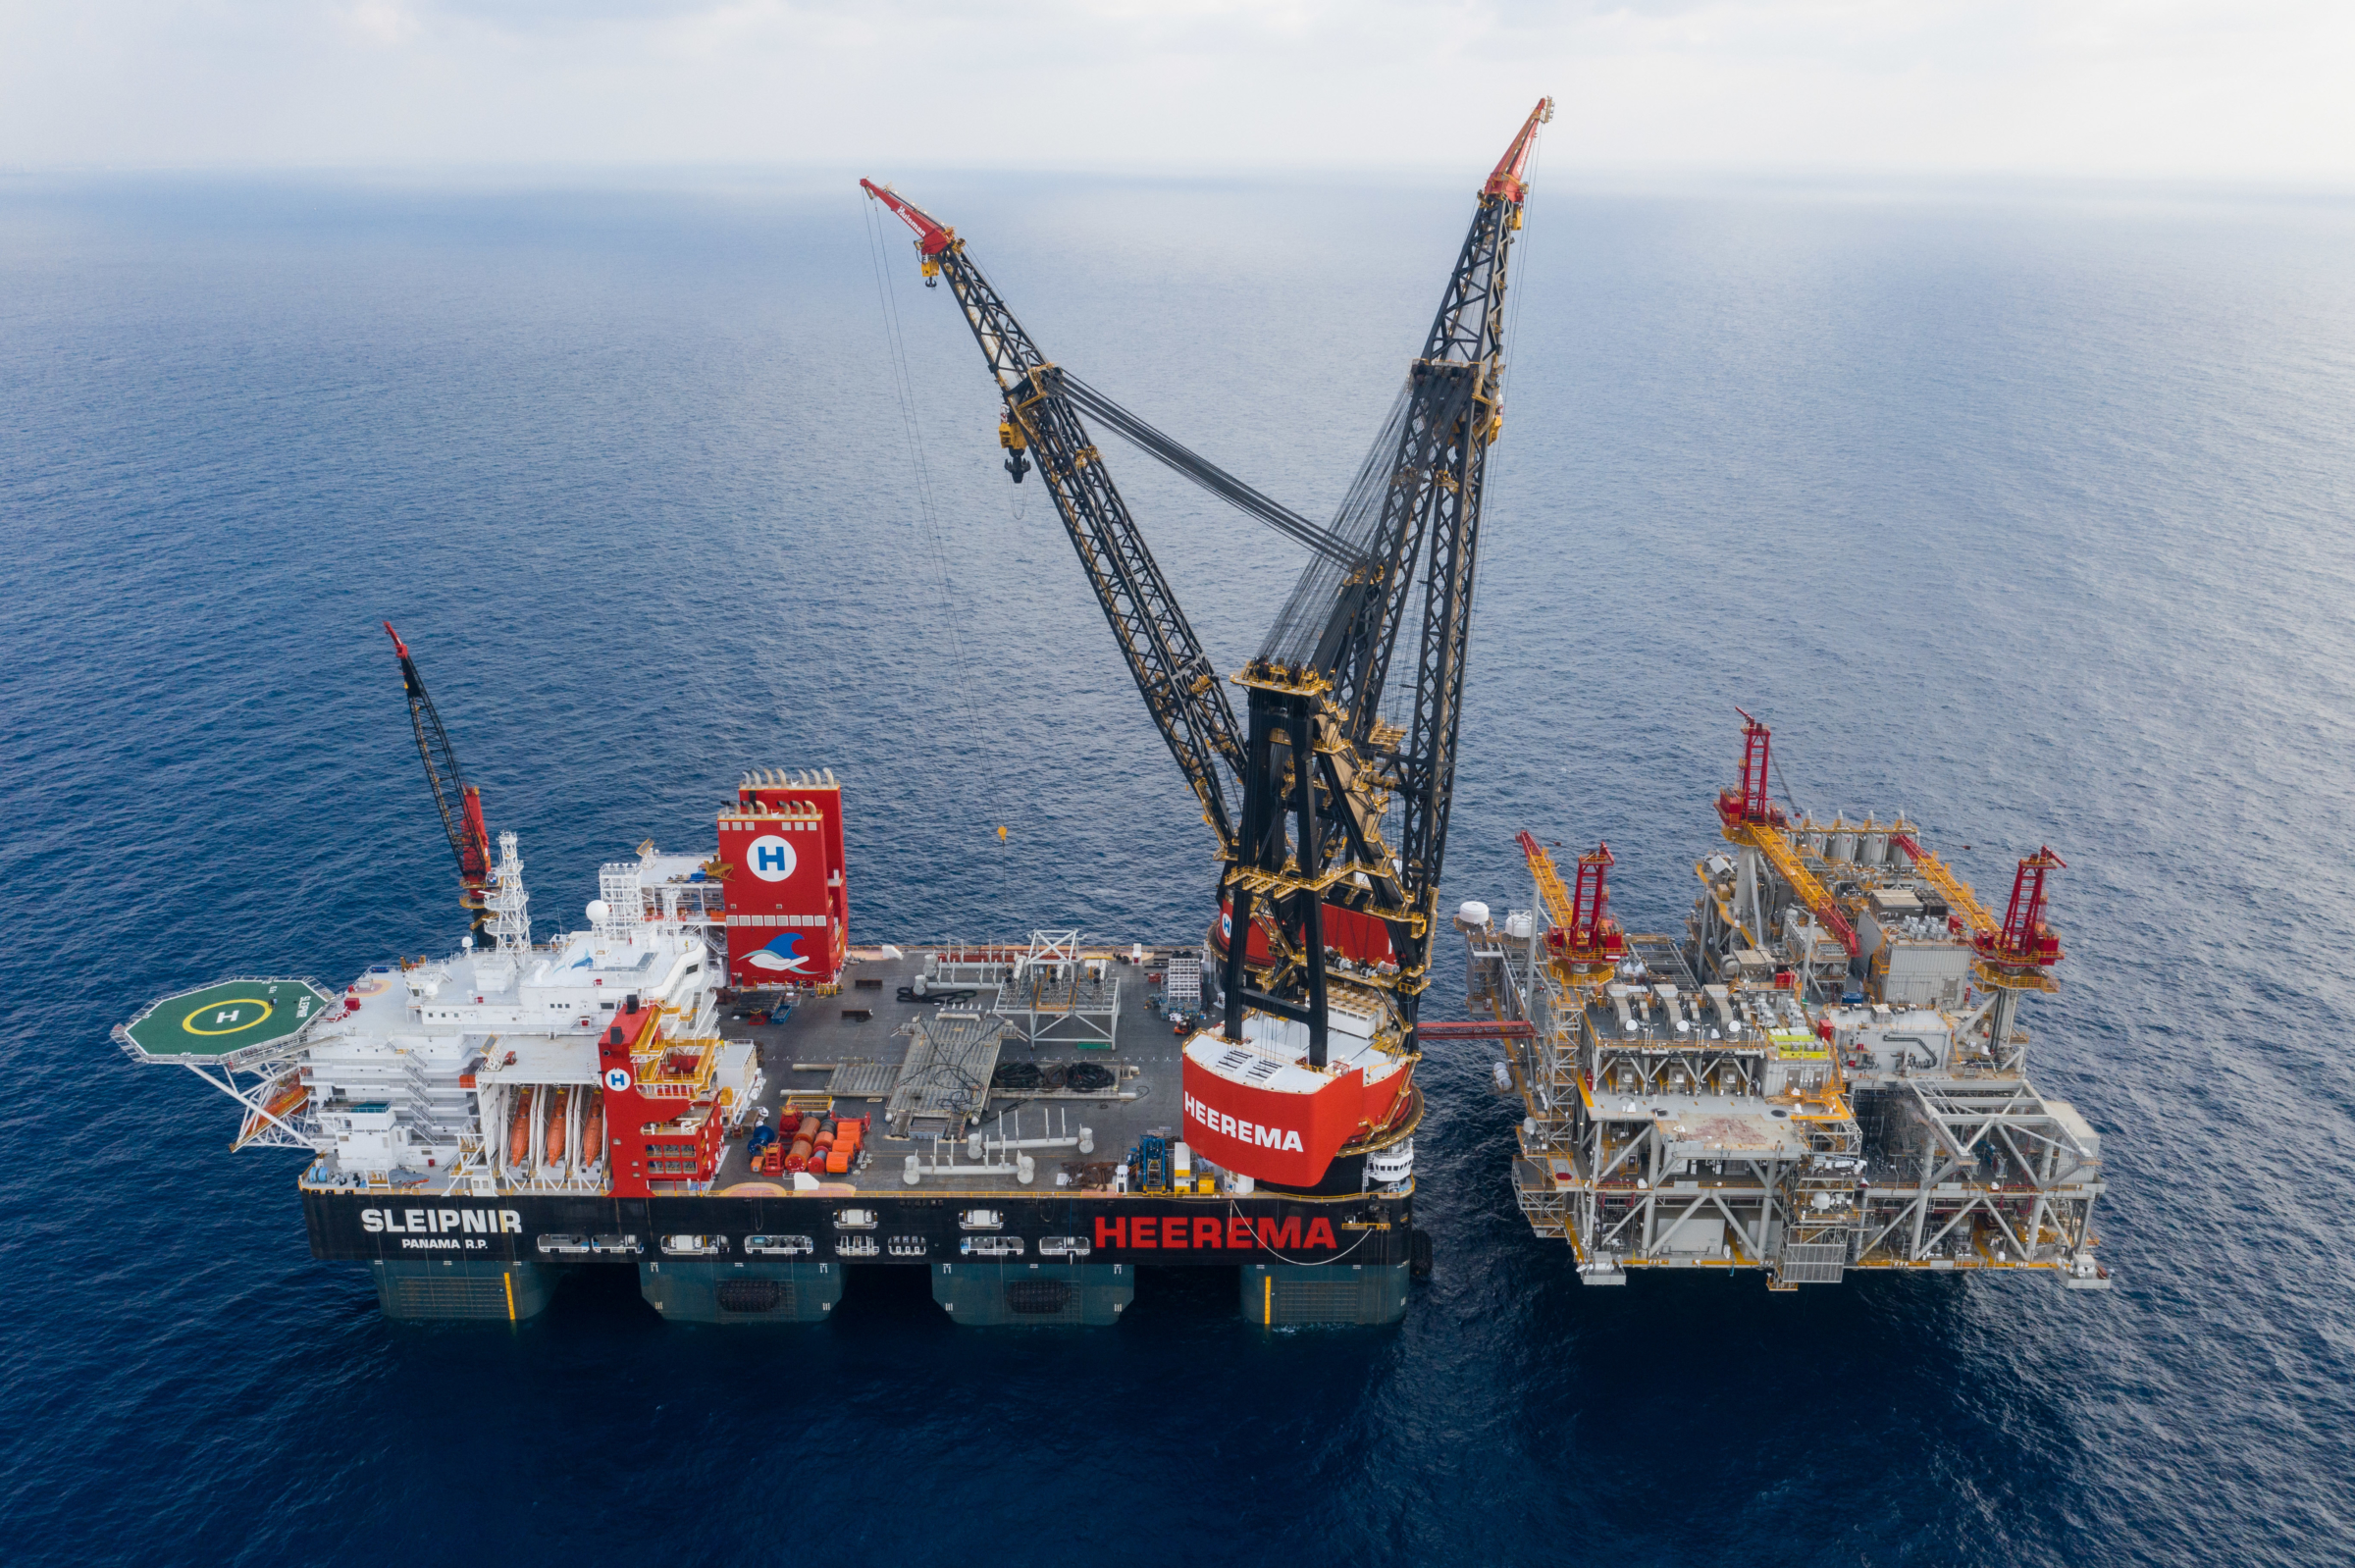 World record: Heerema's crane vessel Sleipnir lifts 15,300 tonnes